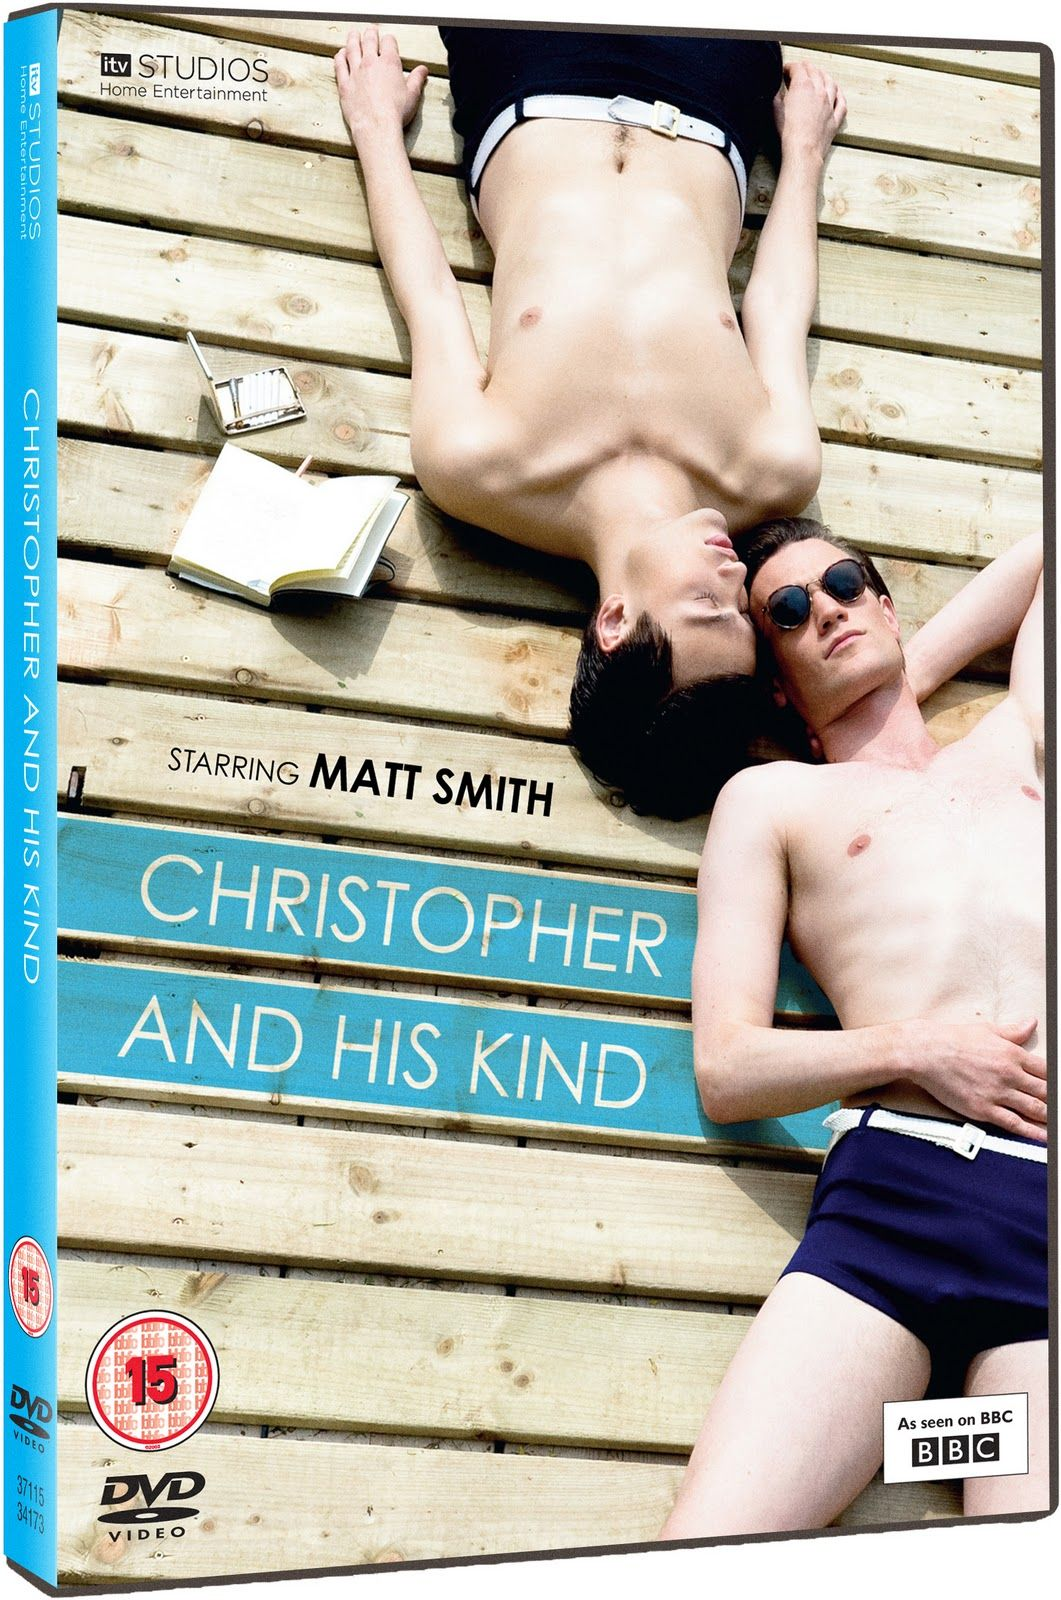 Christopher And His Kind The Doctor Period Drama Gay British People The Bbc Amazing Movie And Couldnt Have Made Me Happier